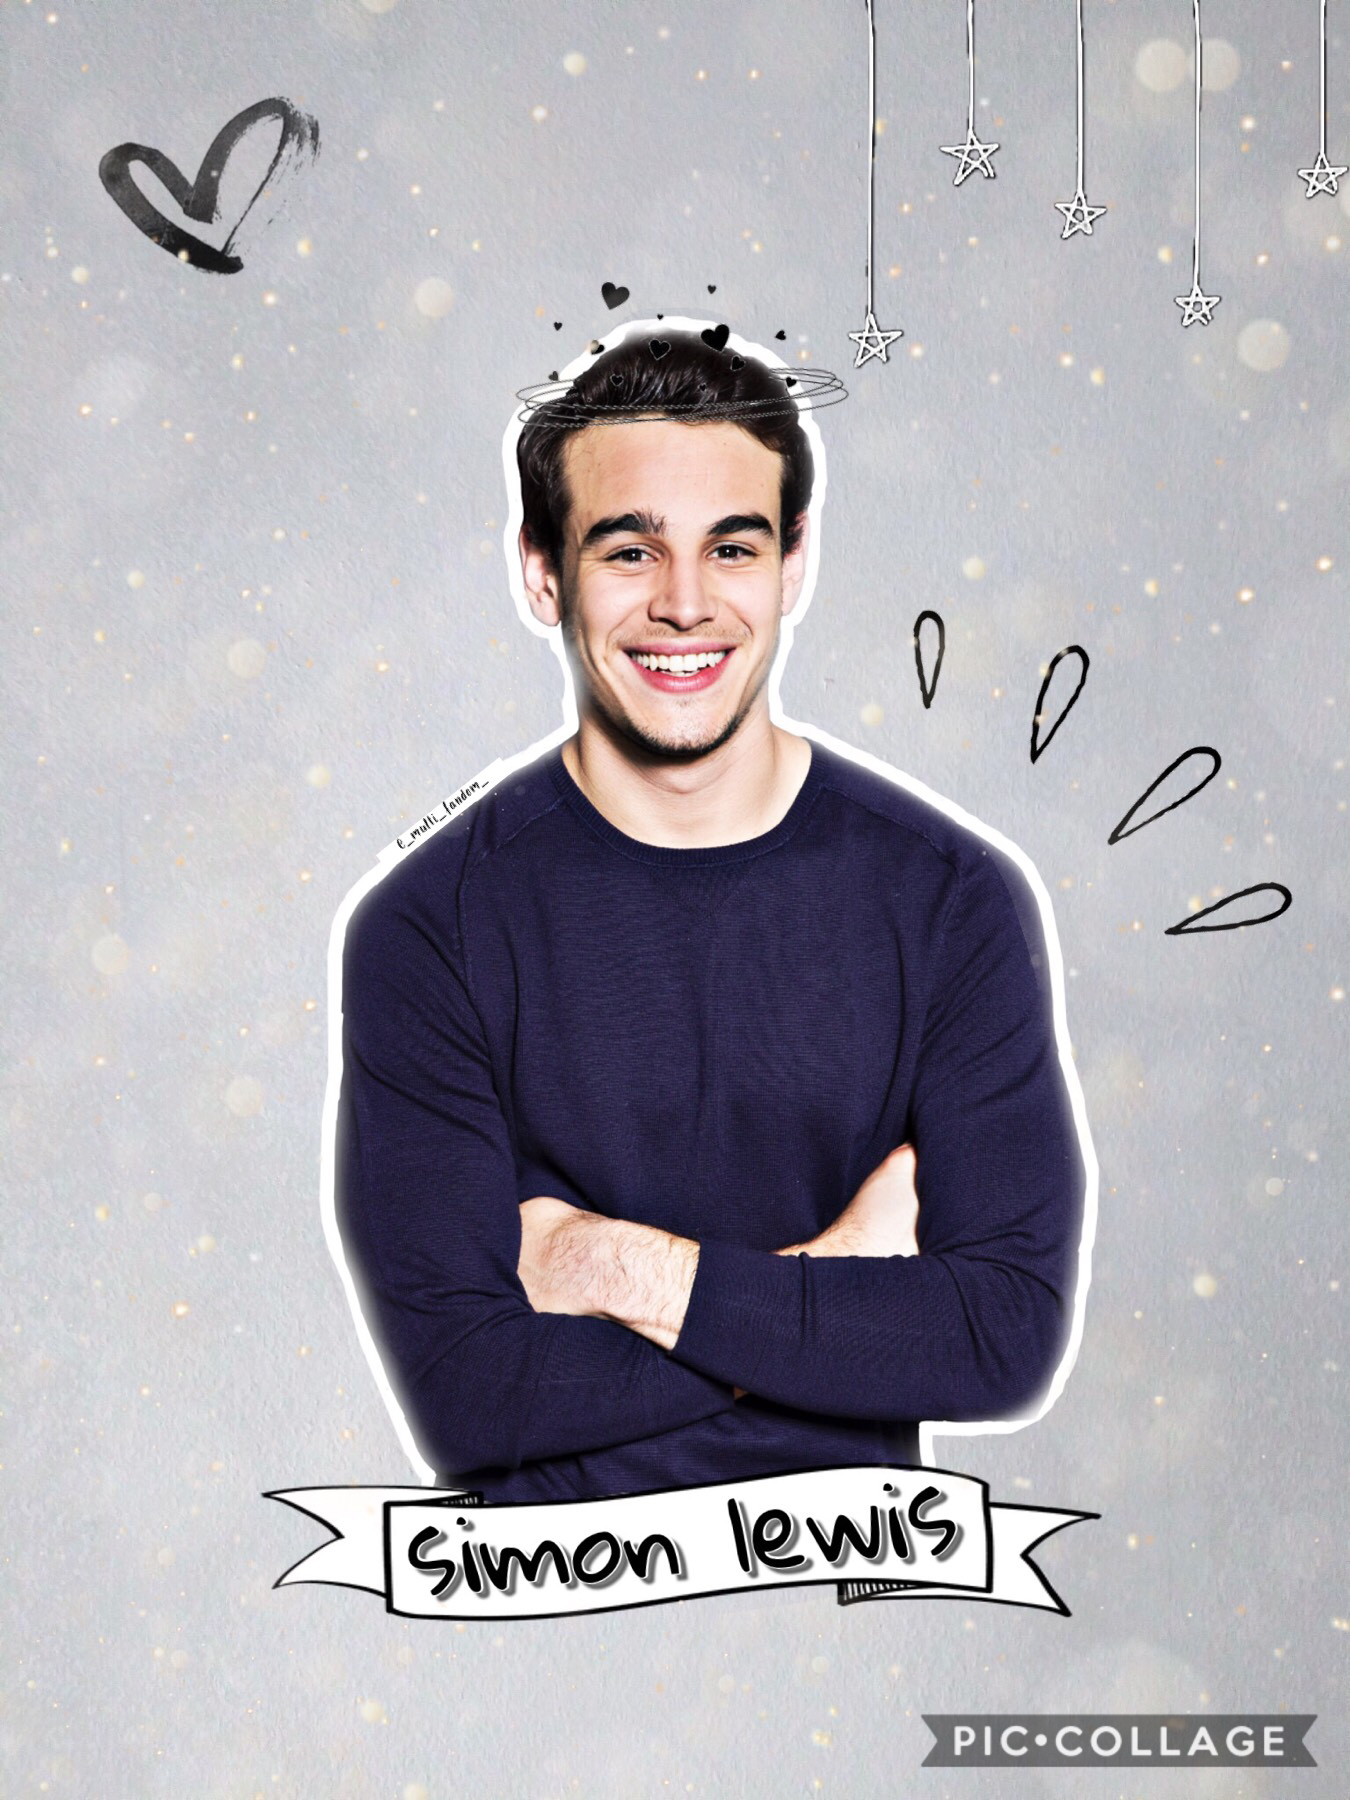 Simon Lewis from shadowhunters 💞